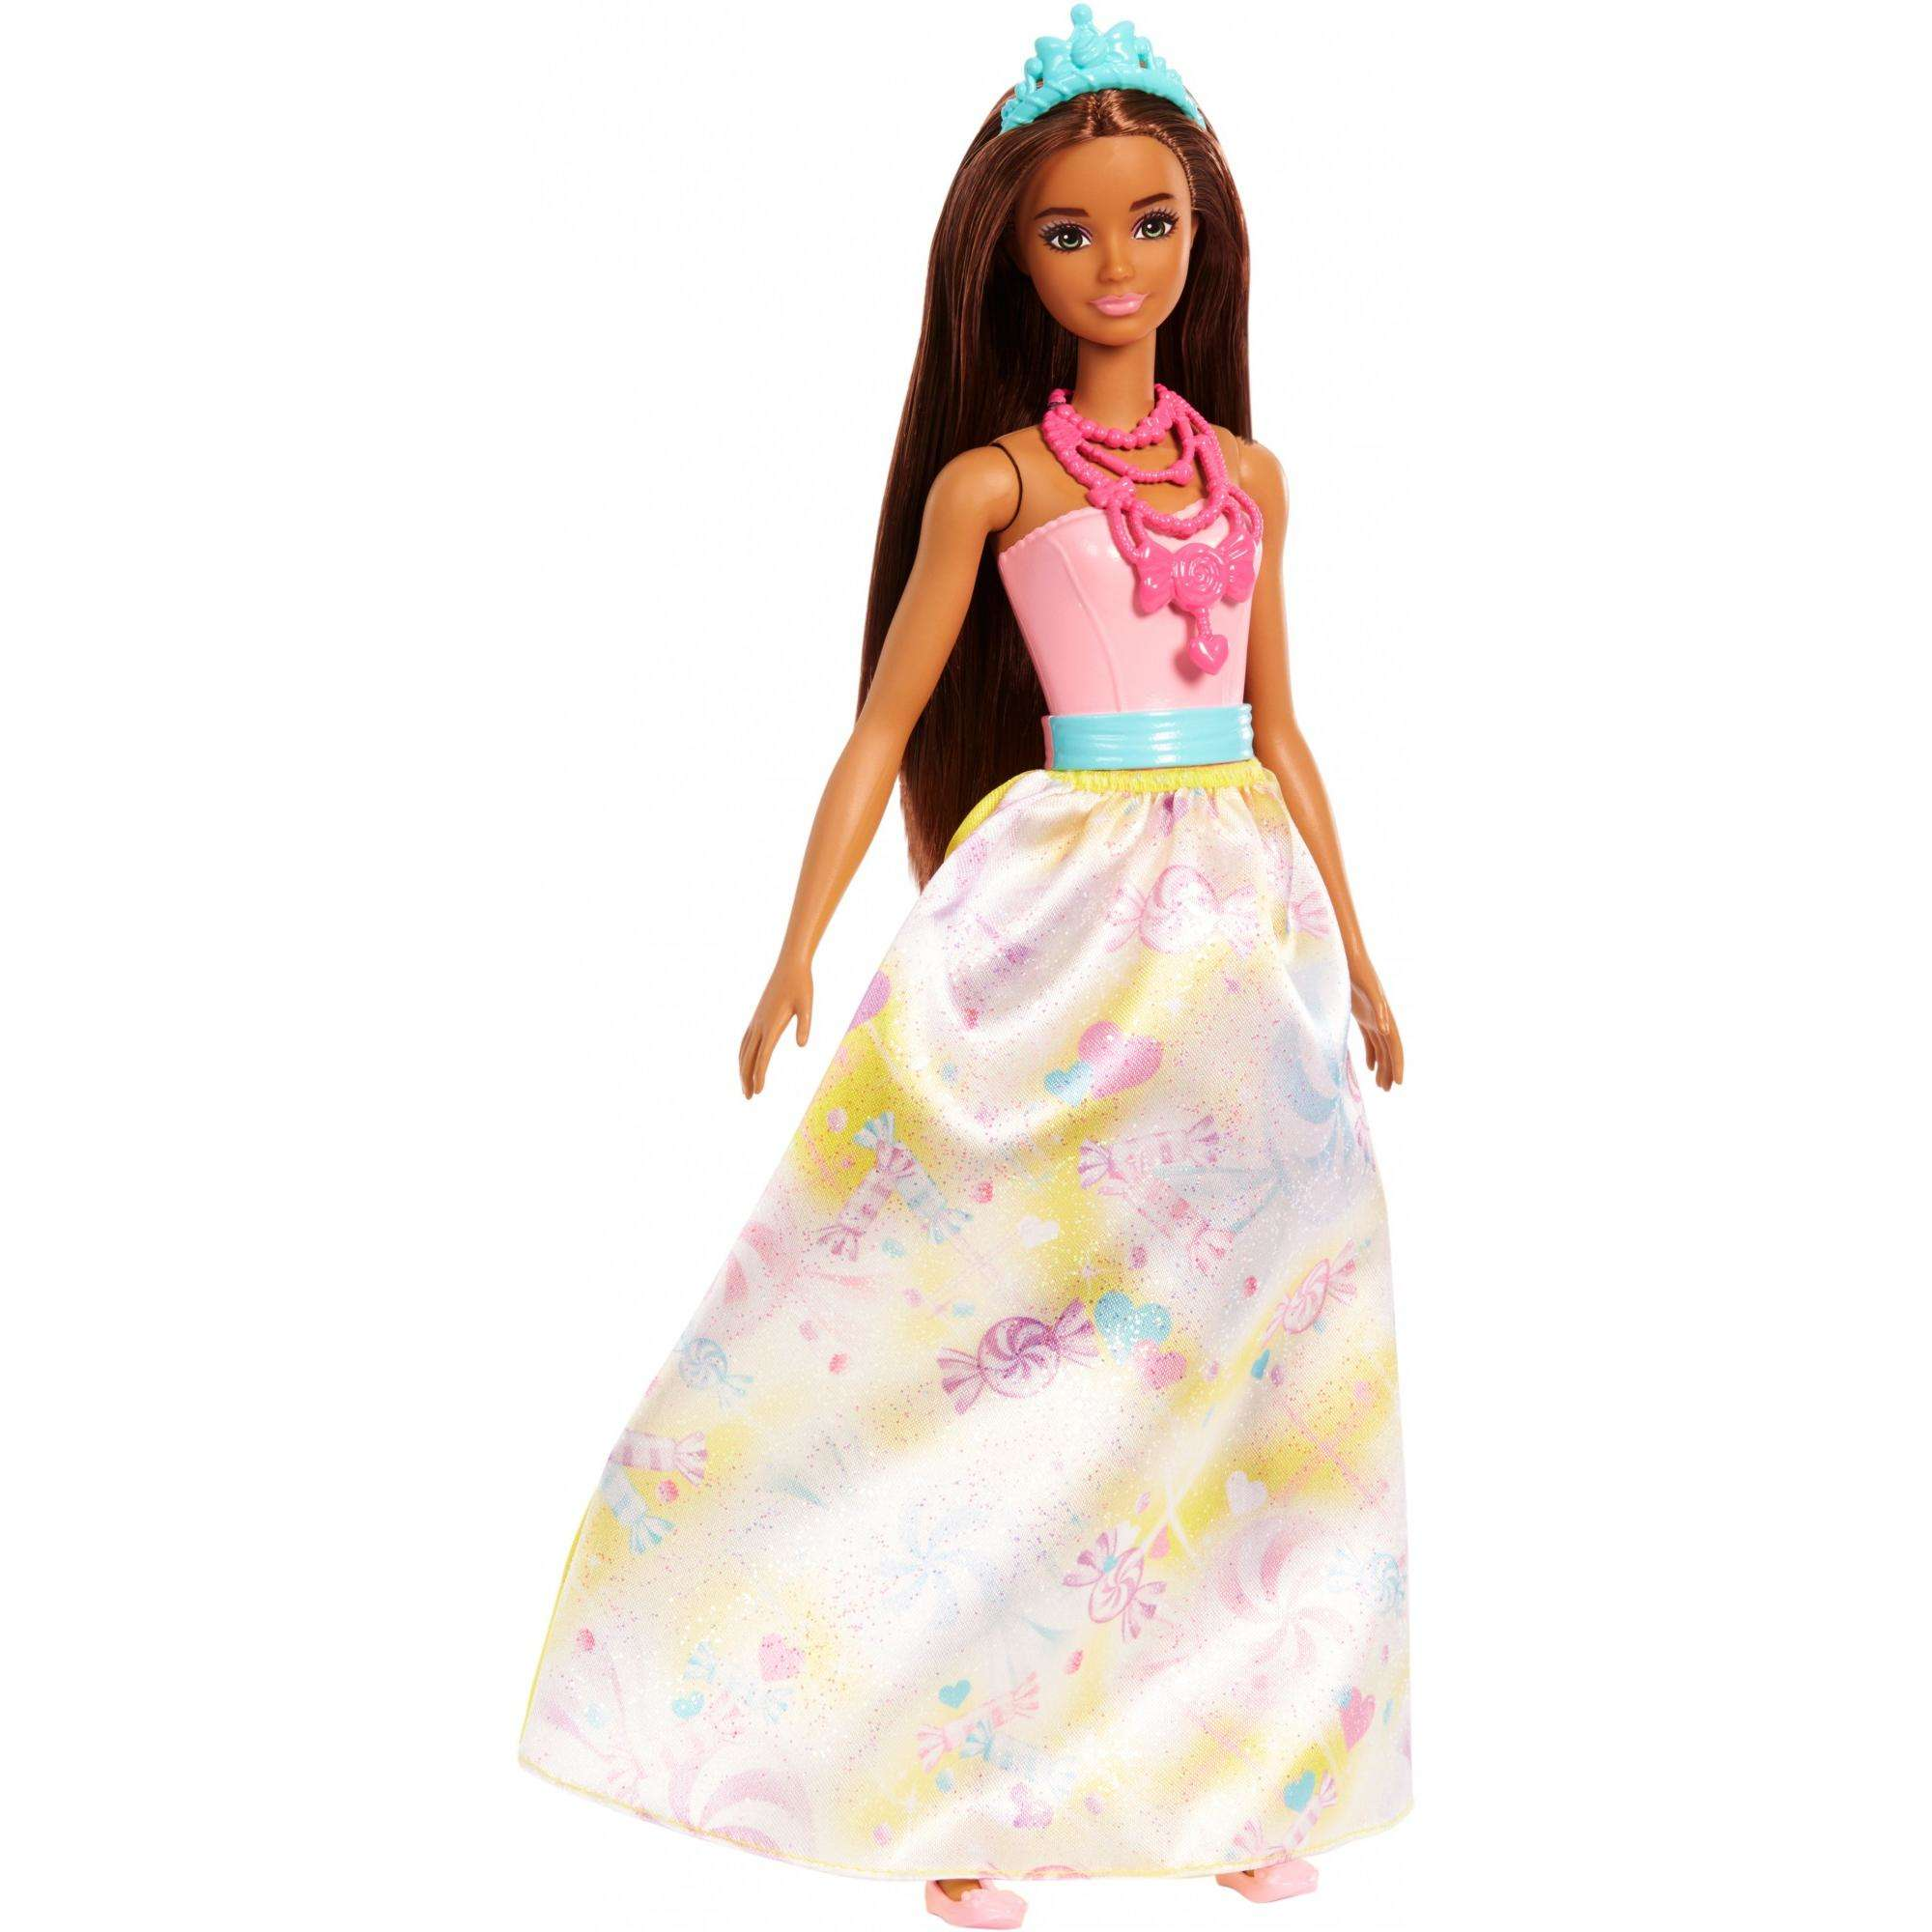 Barbie Dreamtopia Princess Doll with Candy-Themed Skirt